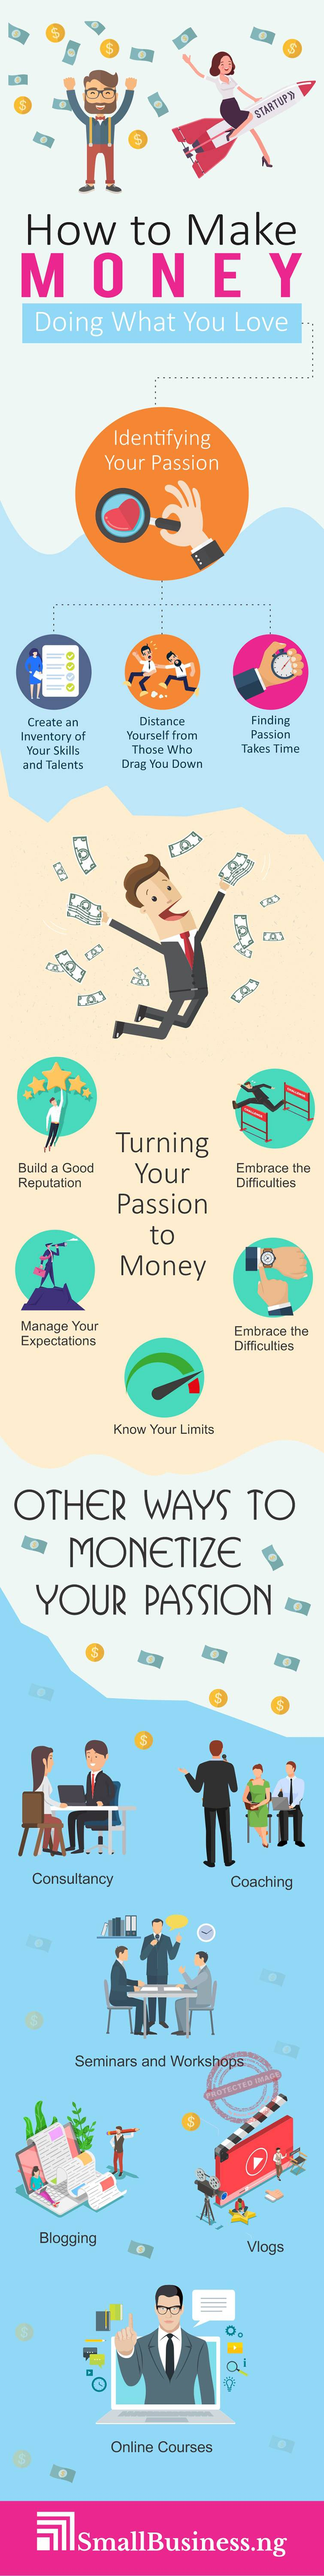 How to make money doing what you love infographic